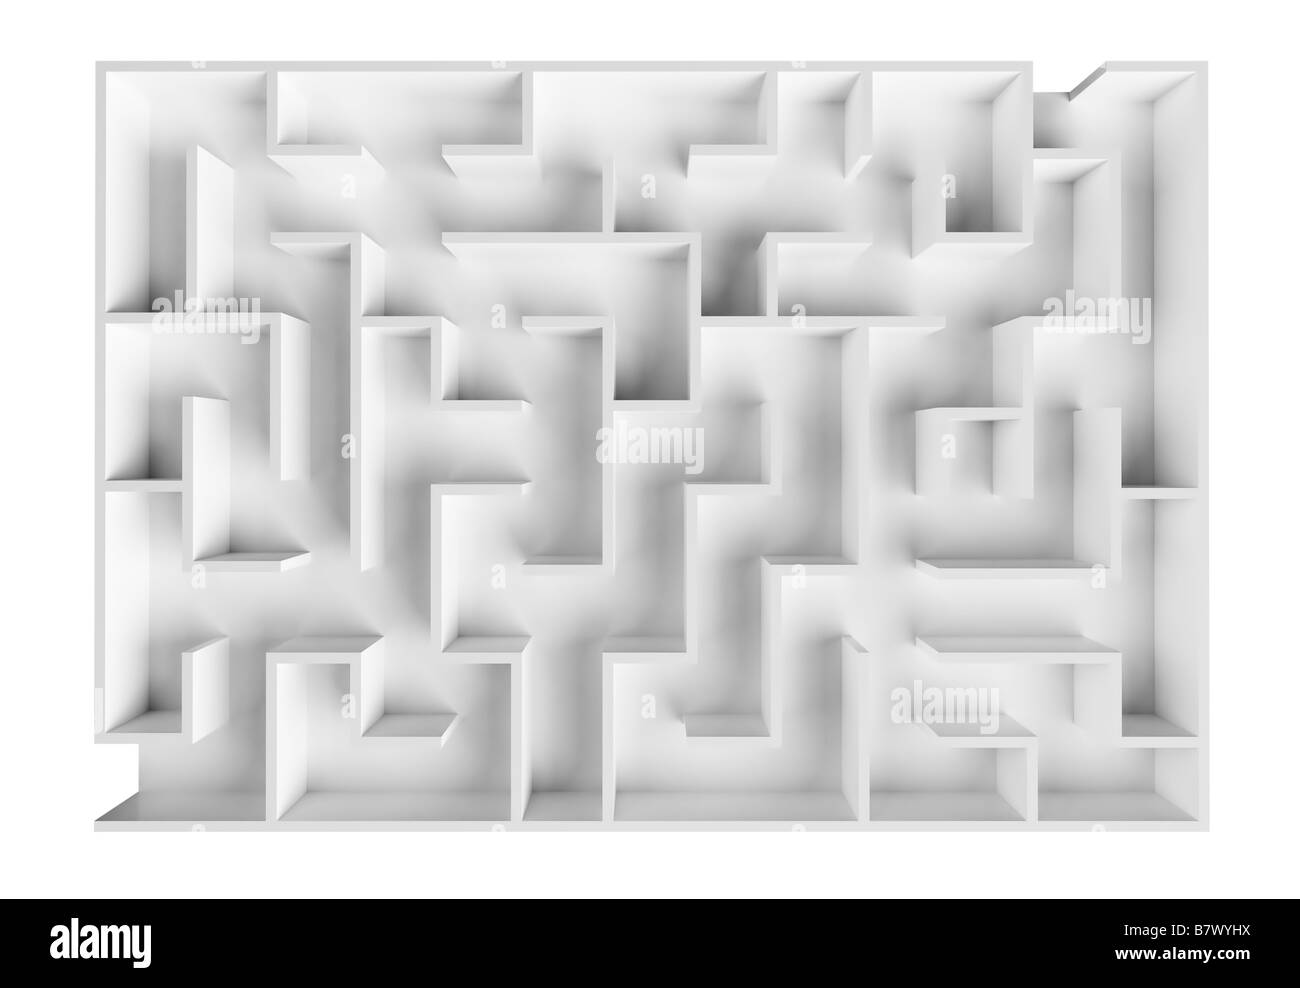 Laboratory labyrinth to examine behavior and intellect of rodents - Stock Image